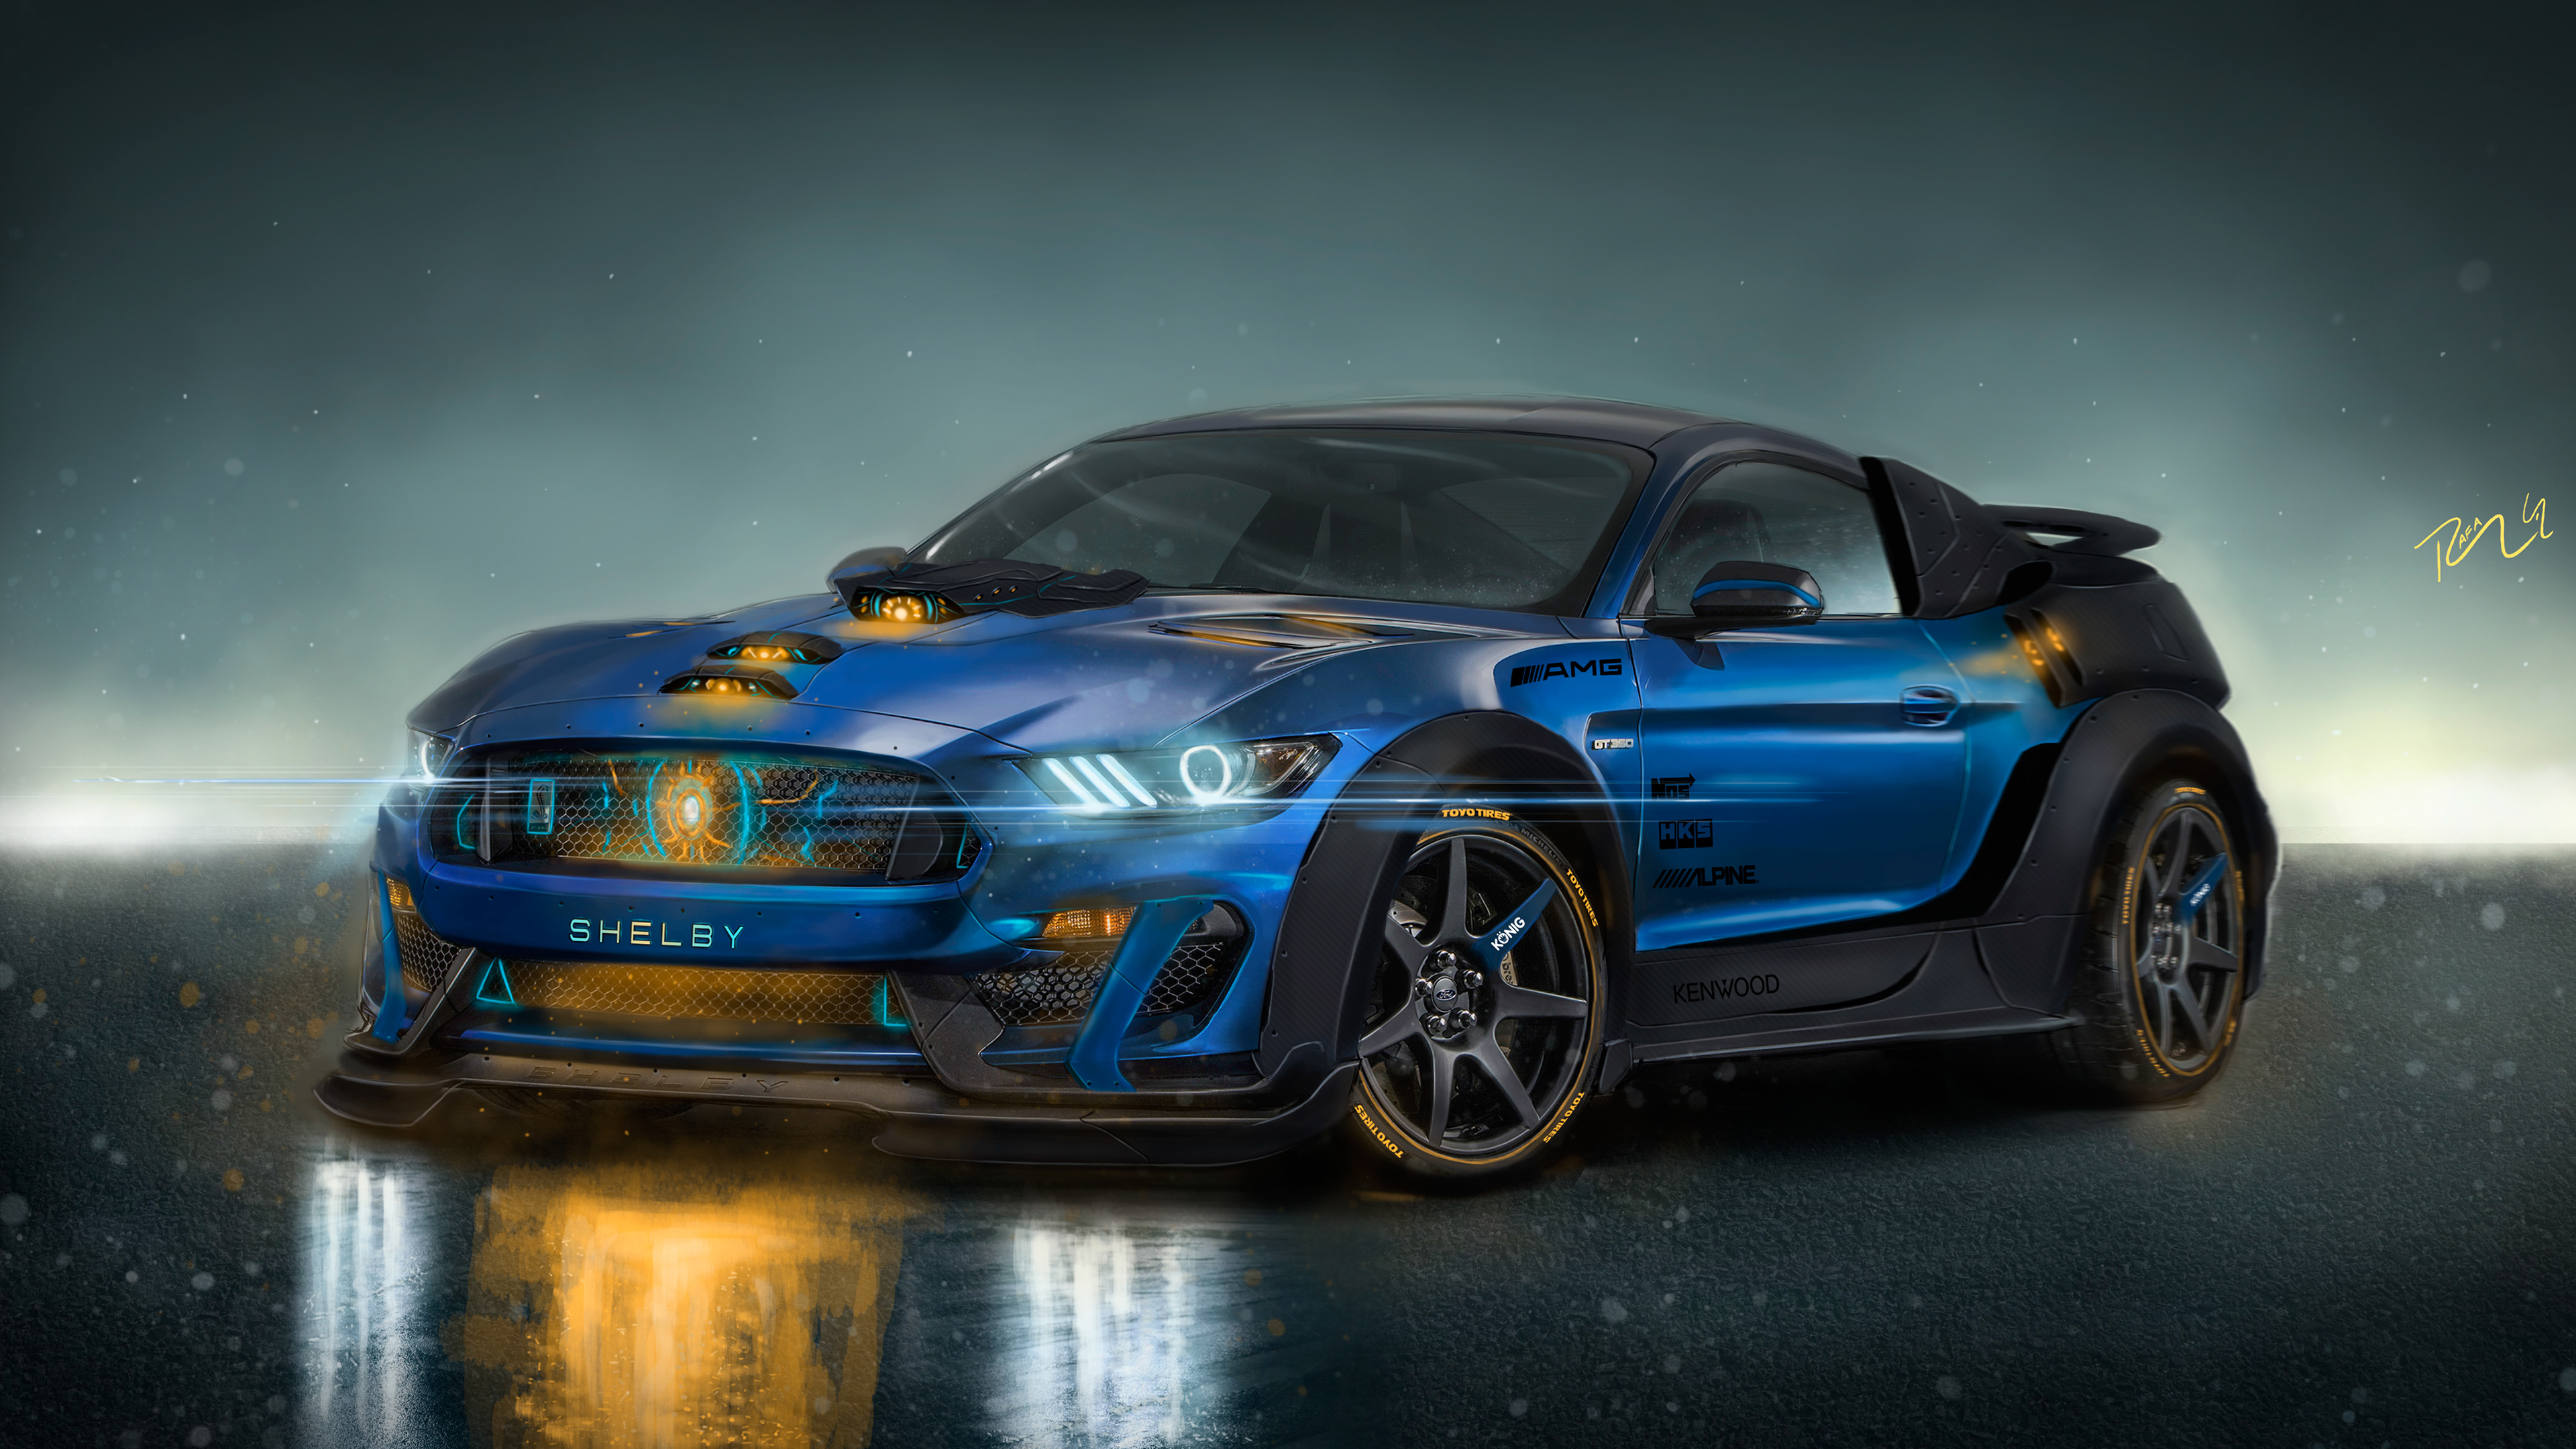 Shelby GT500R Custom CGI 4K Wallpaper